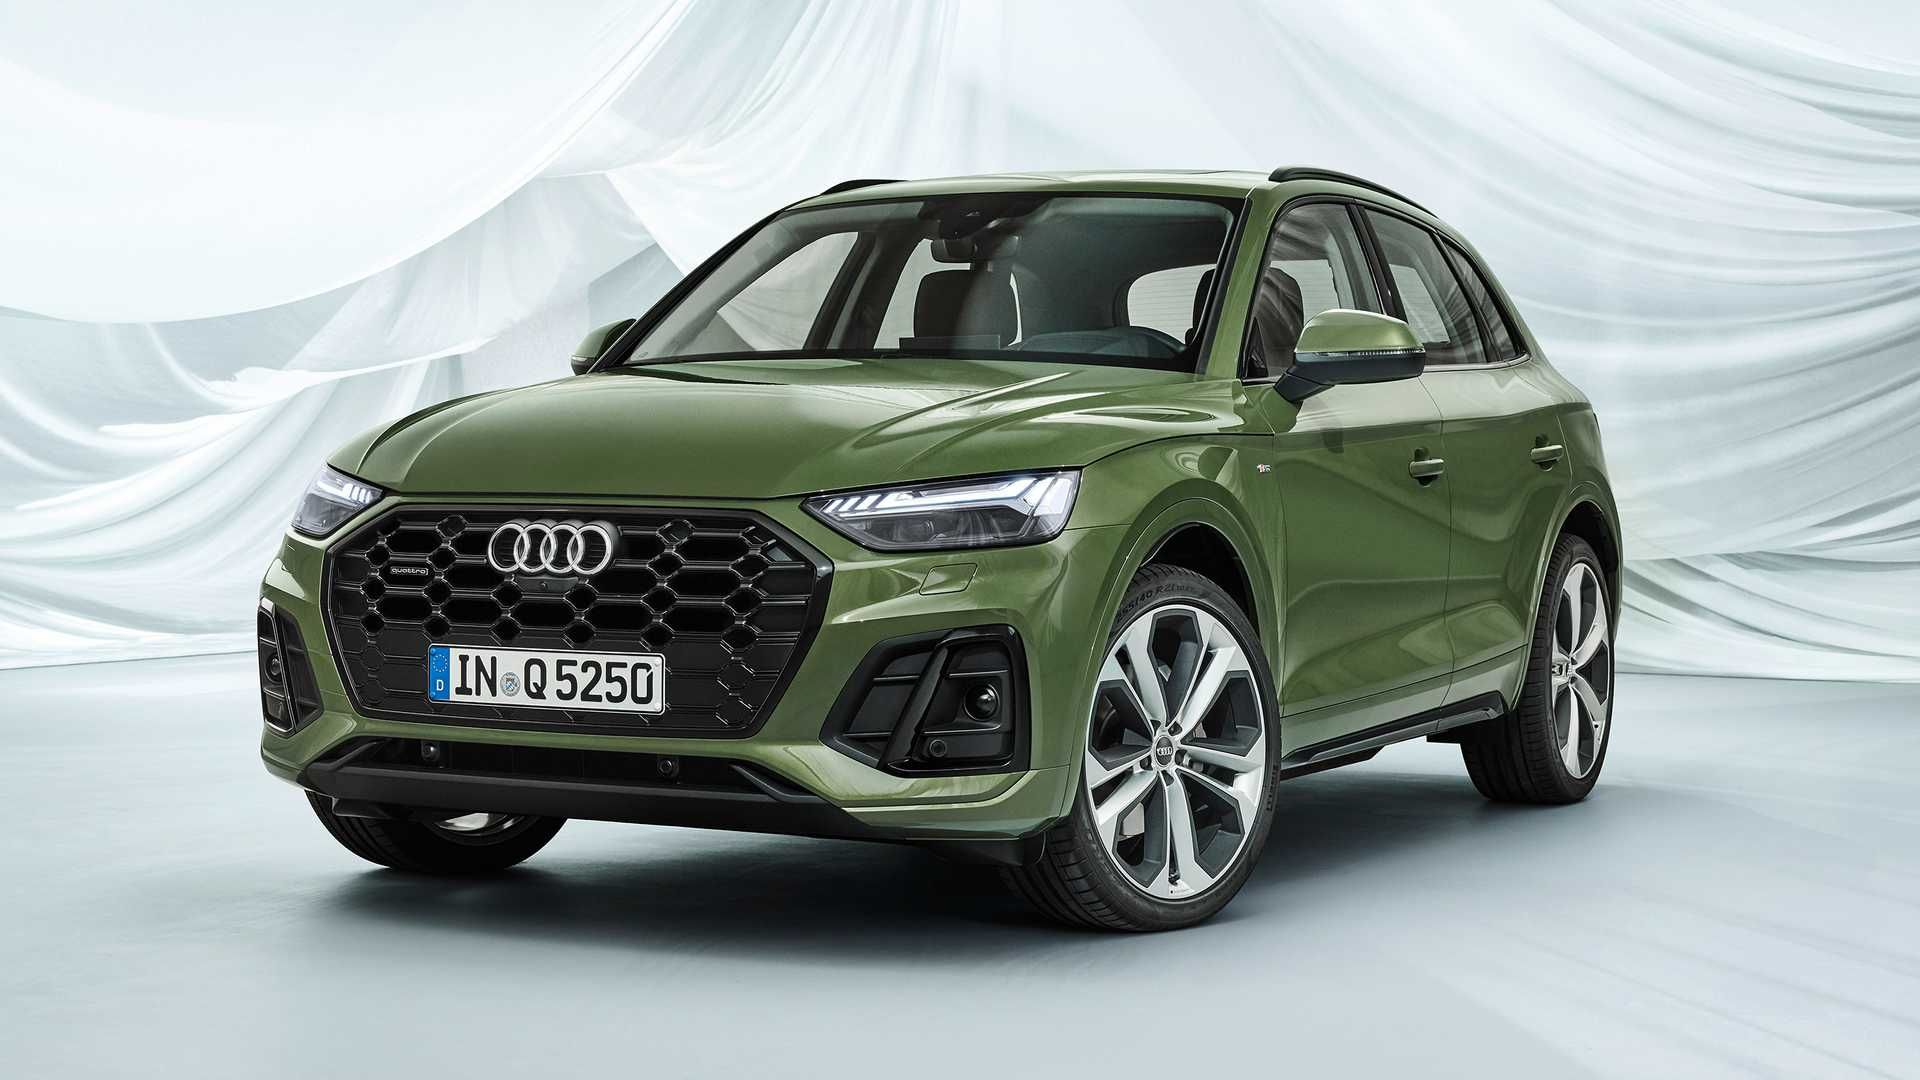 Hot Audi Rs Q5 Hinted By Company Spokesman Audi Q5 Audi Audi Rs